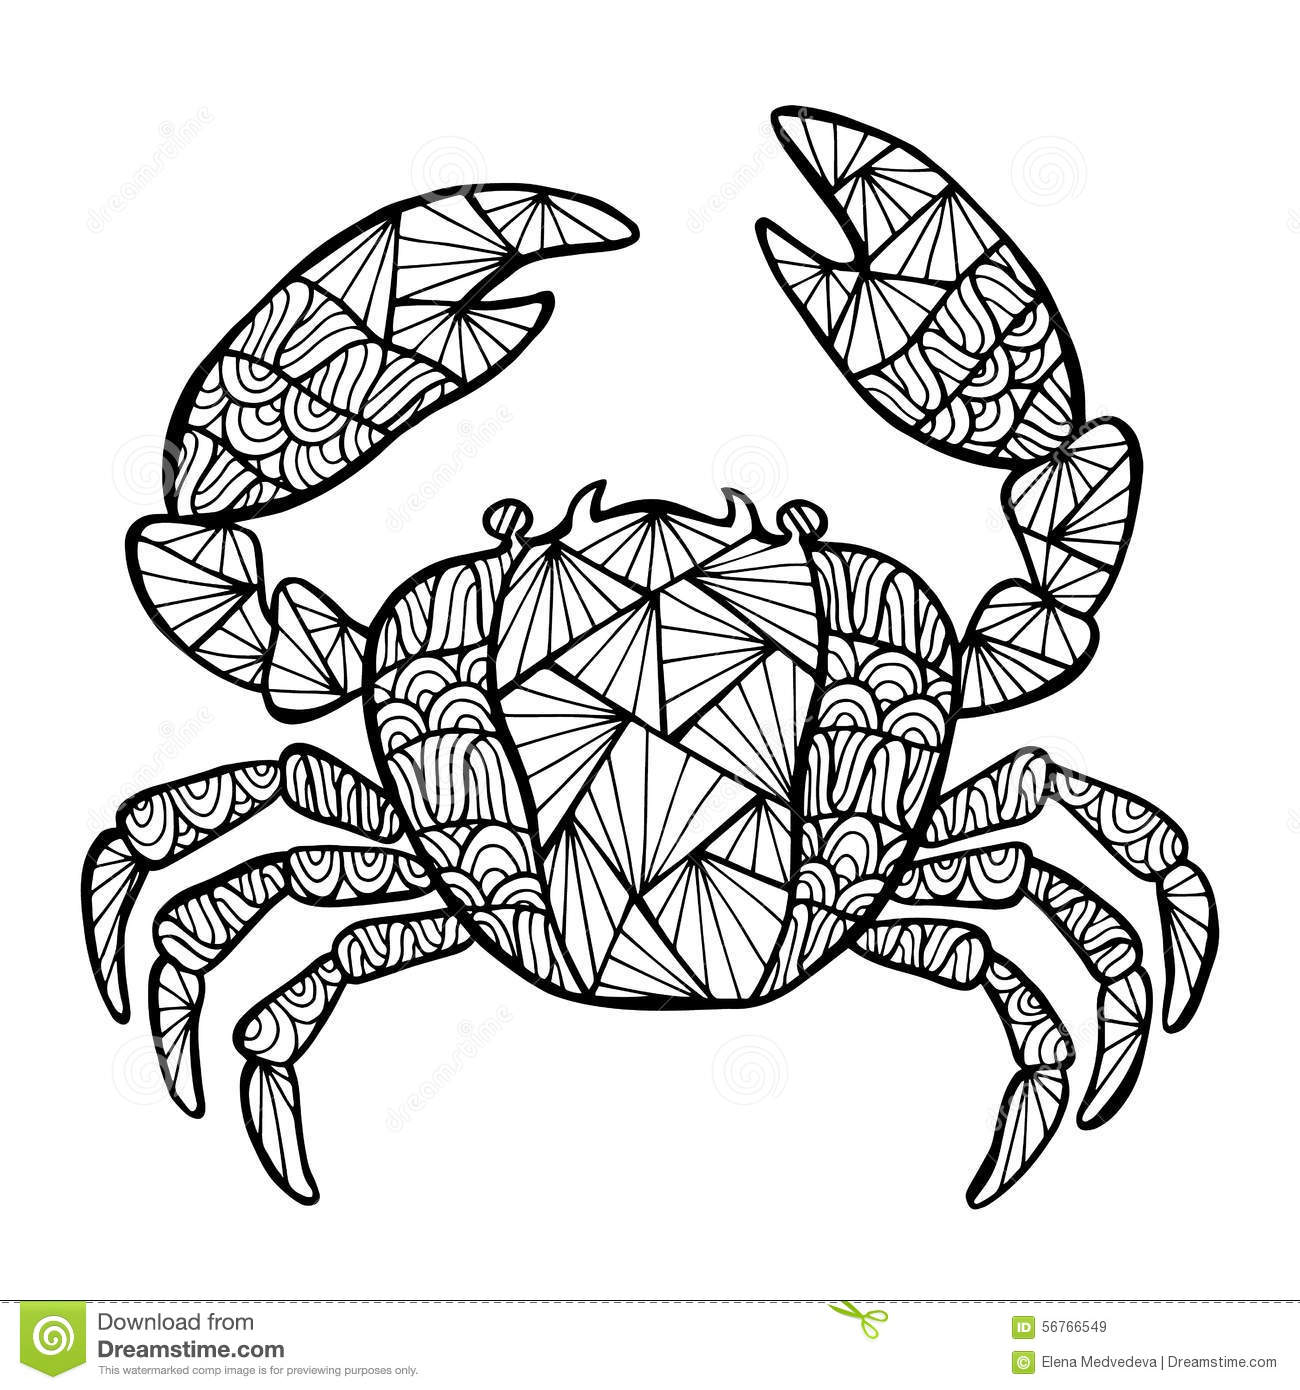 Download Animal Mandala Coloring Pages Coloring Adult